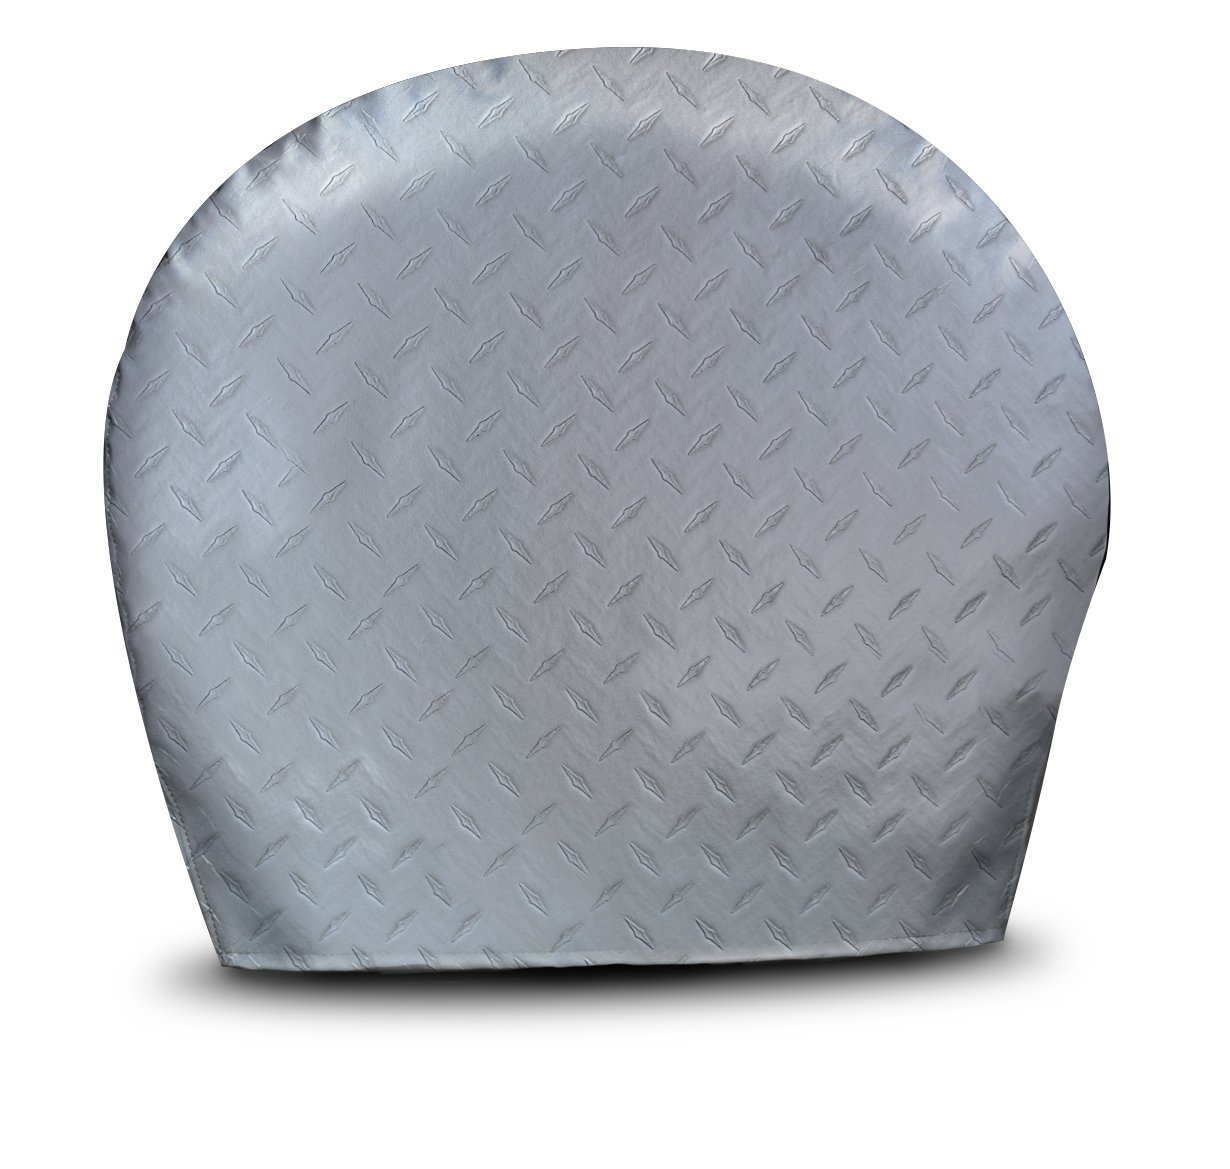 ADCO 3756 Silver OS Diamond Plated Steel Vinyl Tyre Gard Wheel Cover, (Set of 2) (Fits 43''-45'') by ADCO